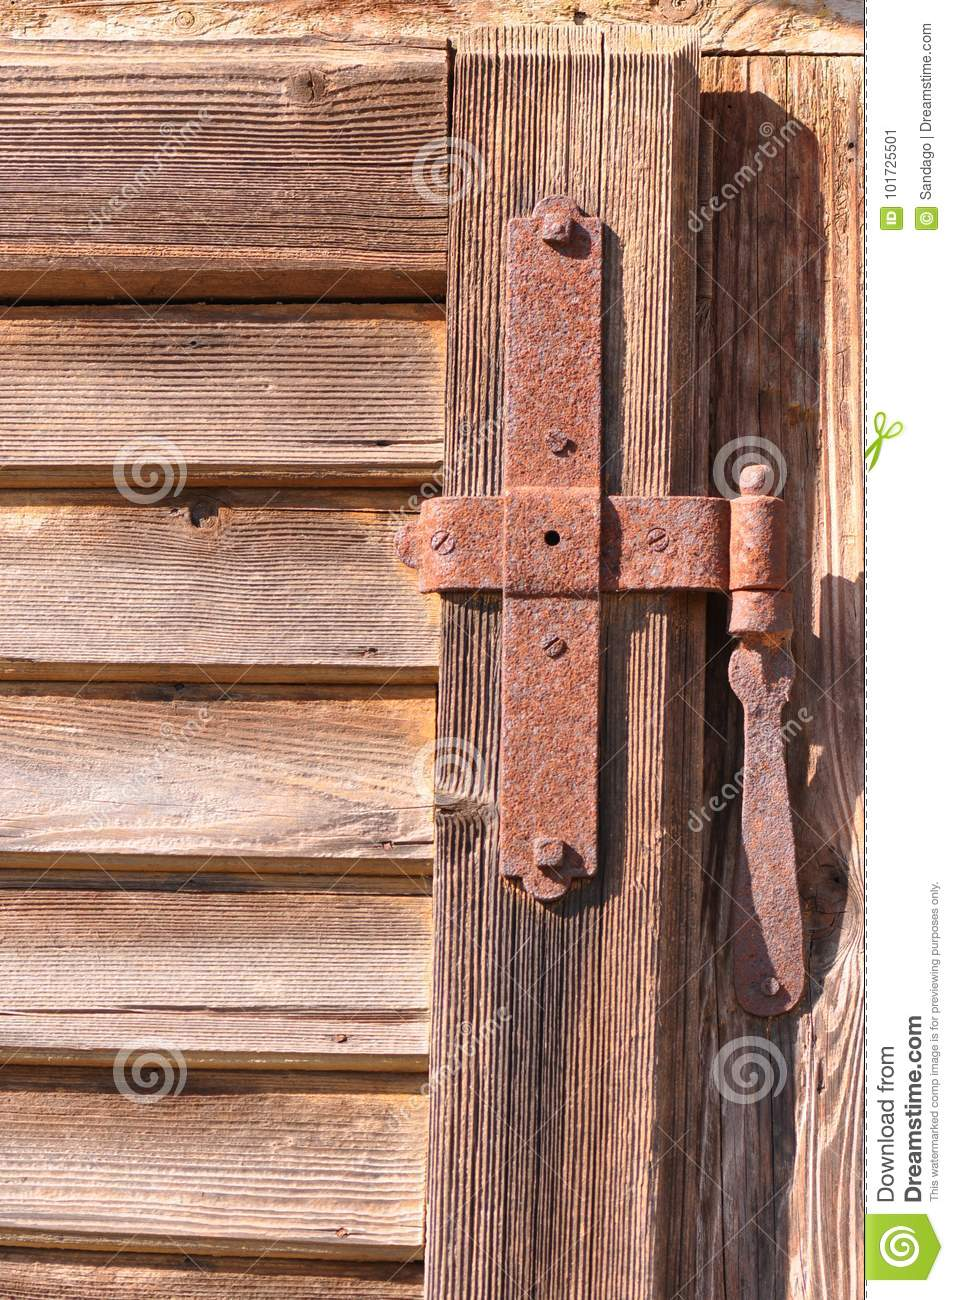 Download Old Door Hinge Stock Image. Image Of Metals, Rusty, Hinges    101725501